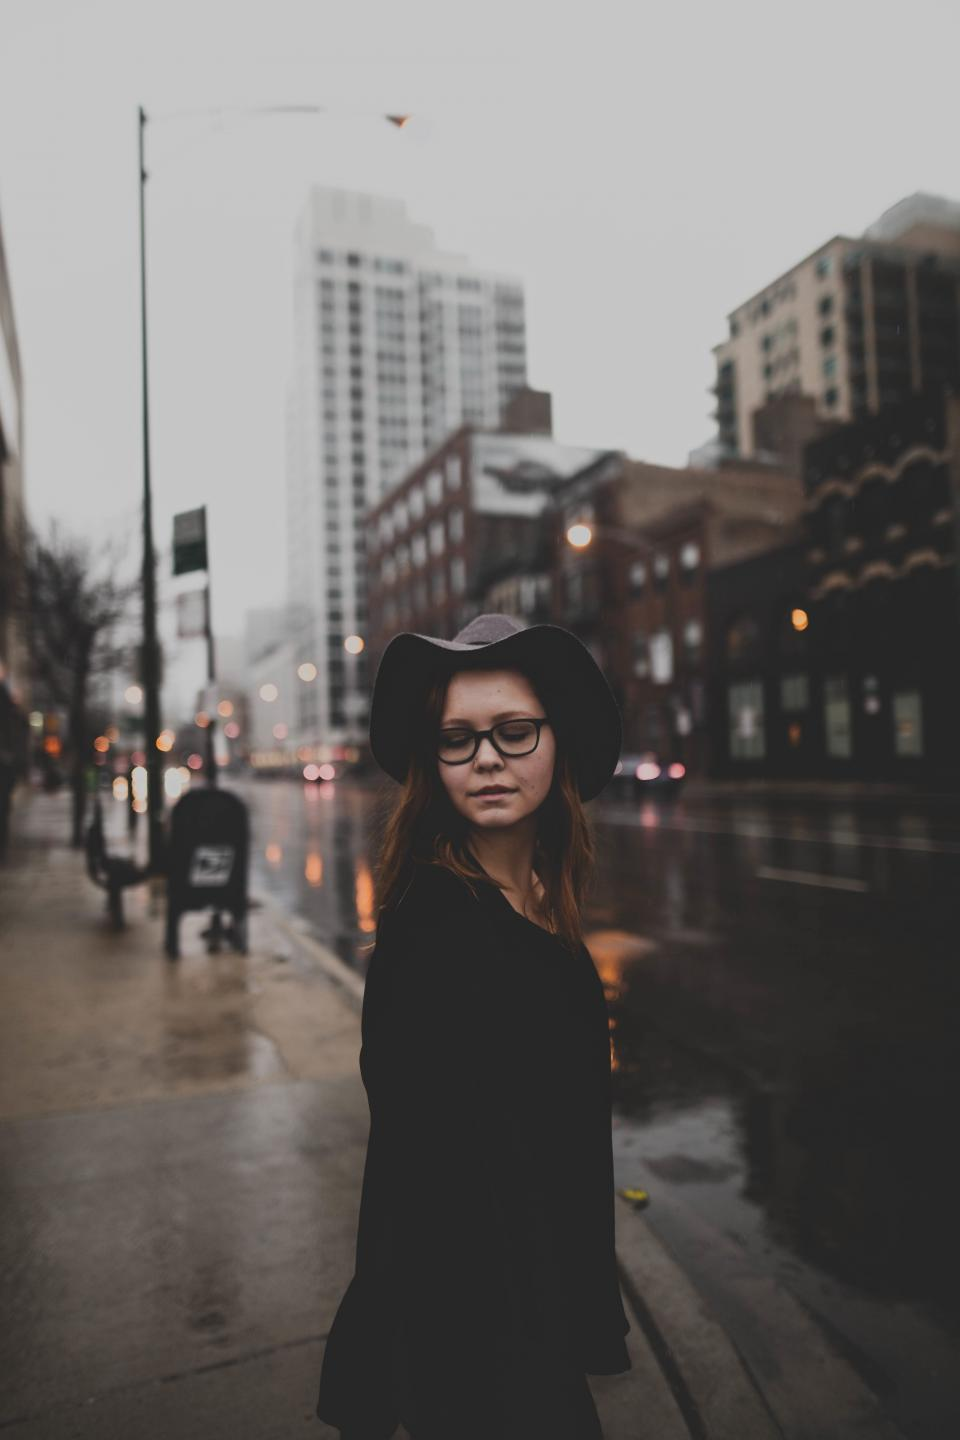 people woman urban city street rain wet road establishment building store restaurant shop eyeglasses